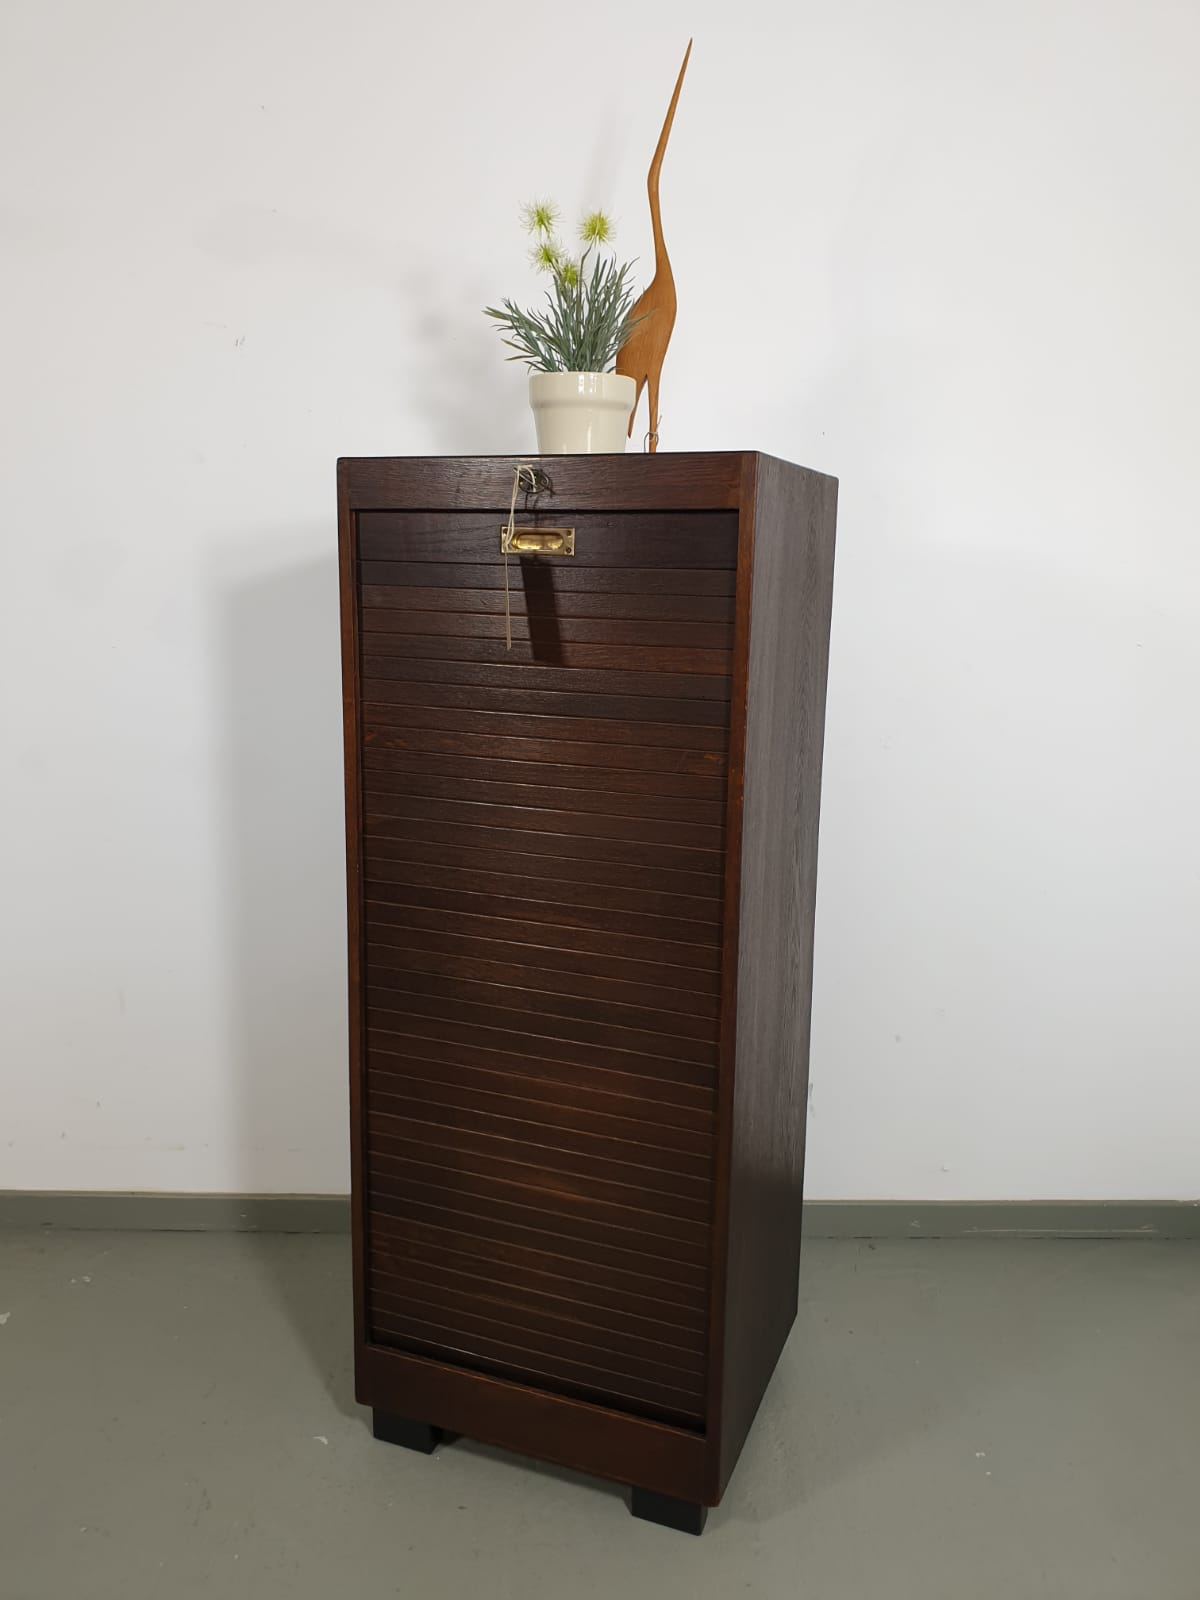 Sold Rolladenschrank Aus Holz Retro Salon Cologne